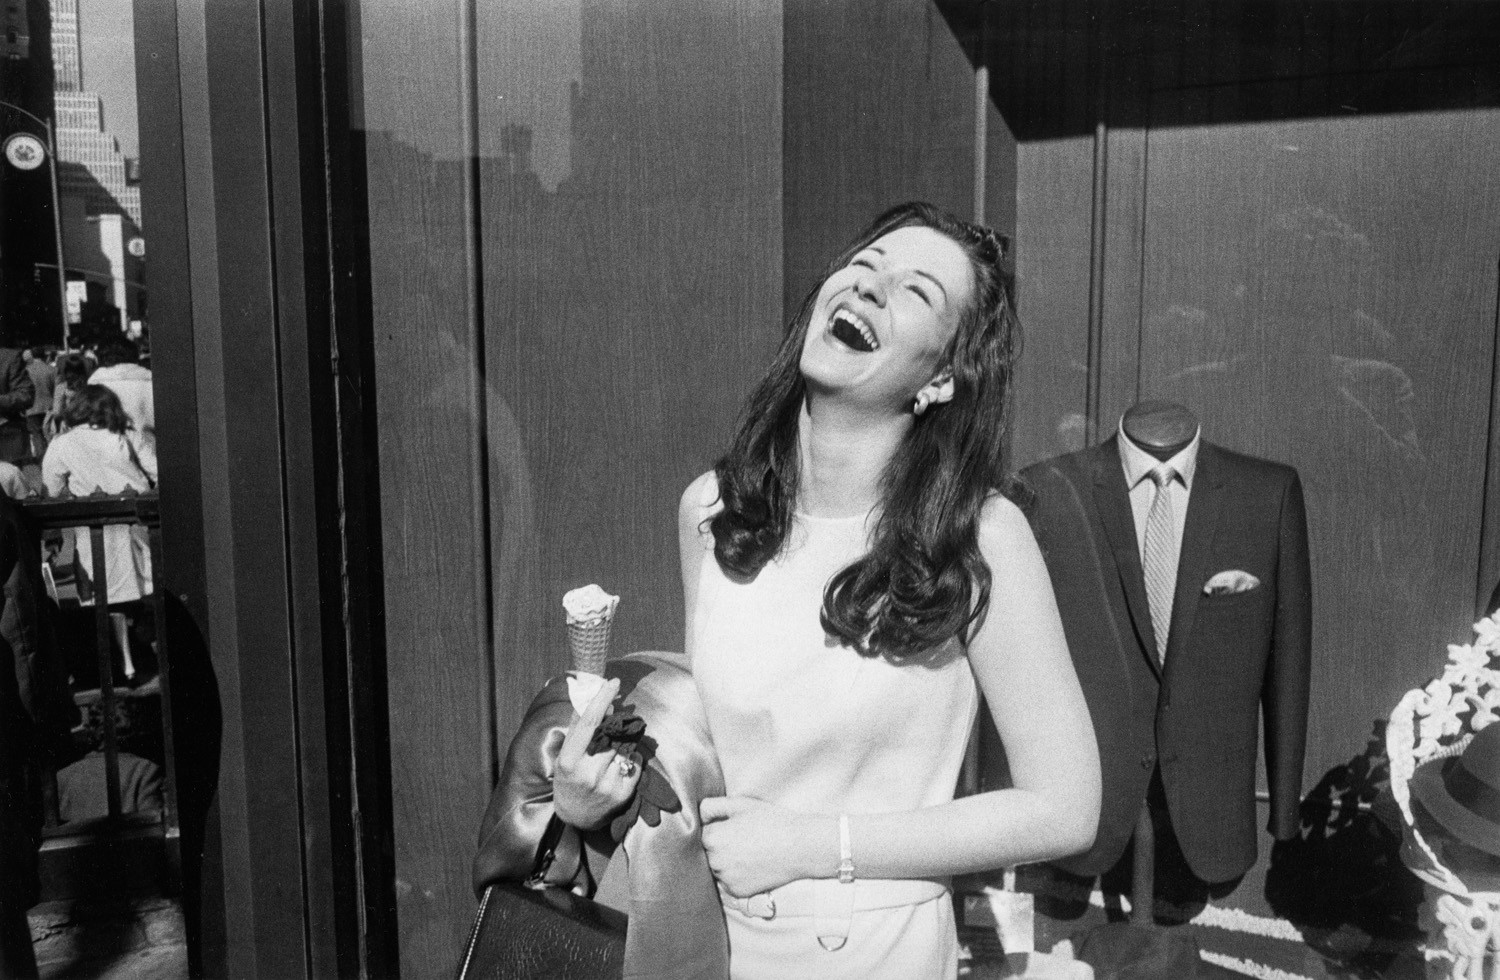 Garry Winogrand, New York, New York, 1970